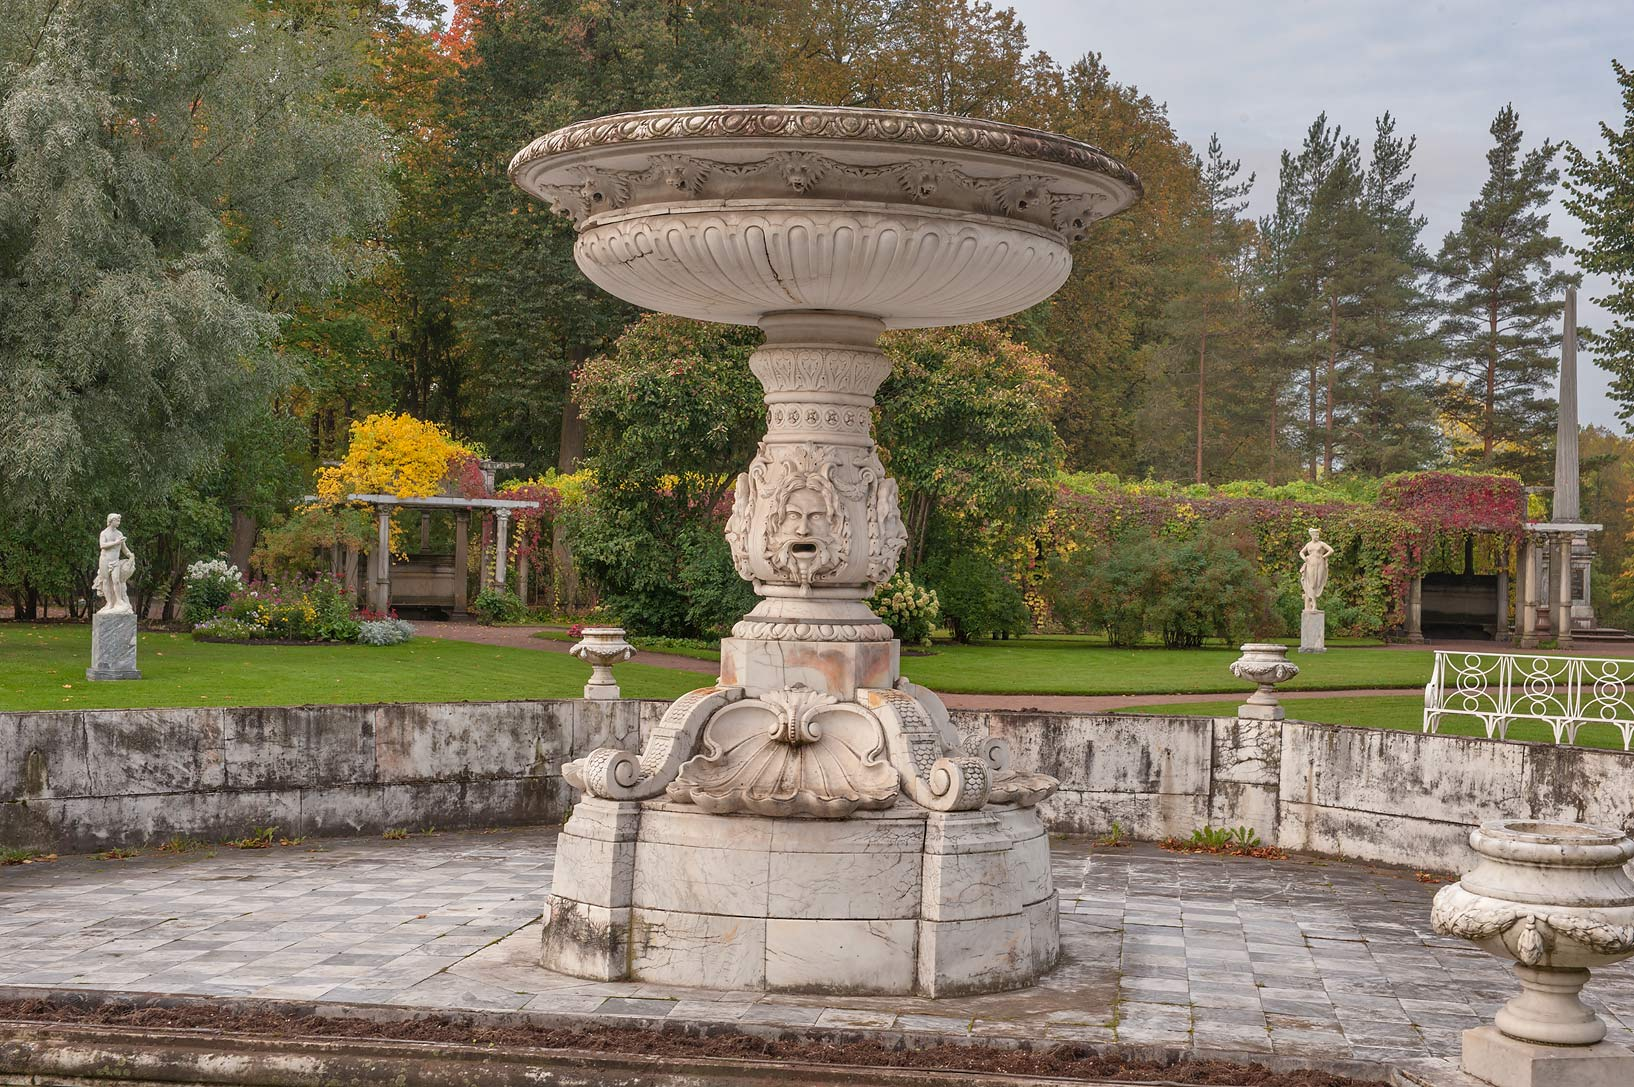 Marble Fountain and nymphs of Private Garden near...south from St.Petersburg, Russia